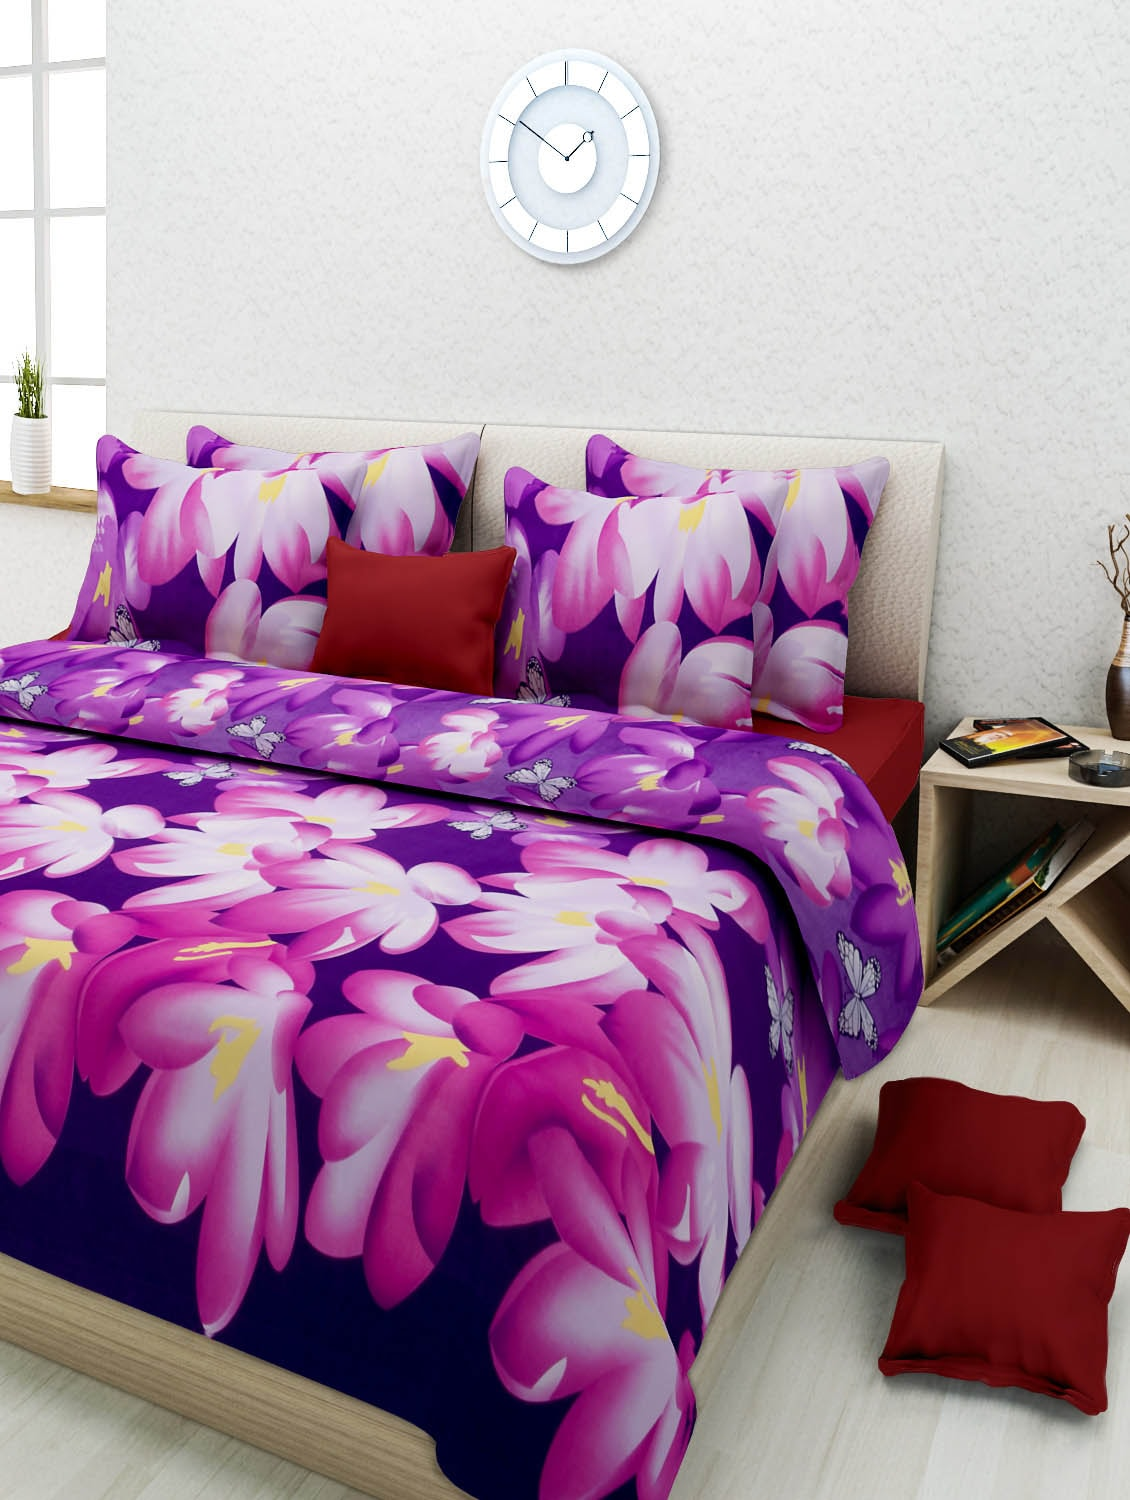 6867b4c761 ... Multi-coloured Poly Cotton 3D Printed Double Bed Sheet Set - 1228757 -  Zoom Image